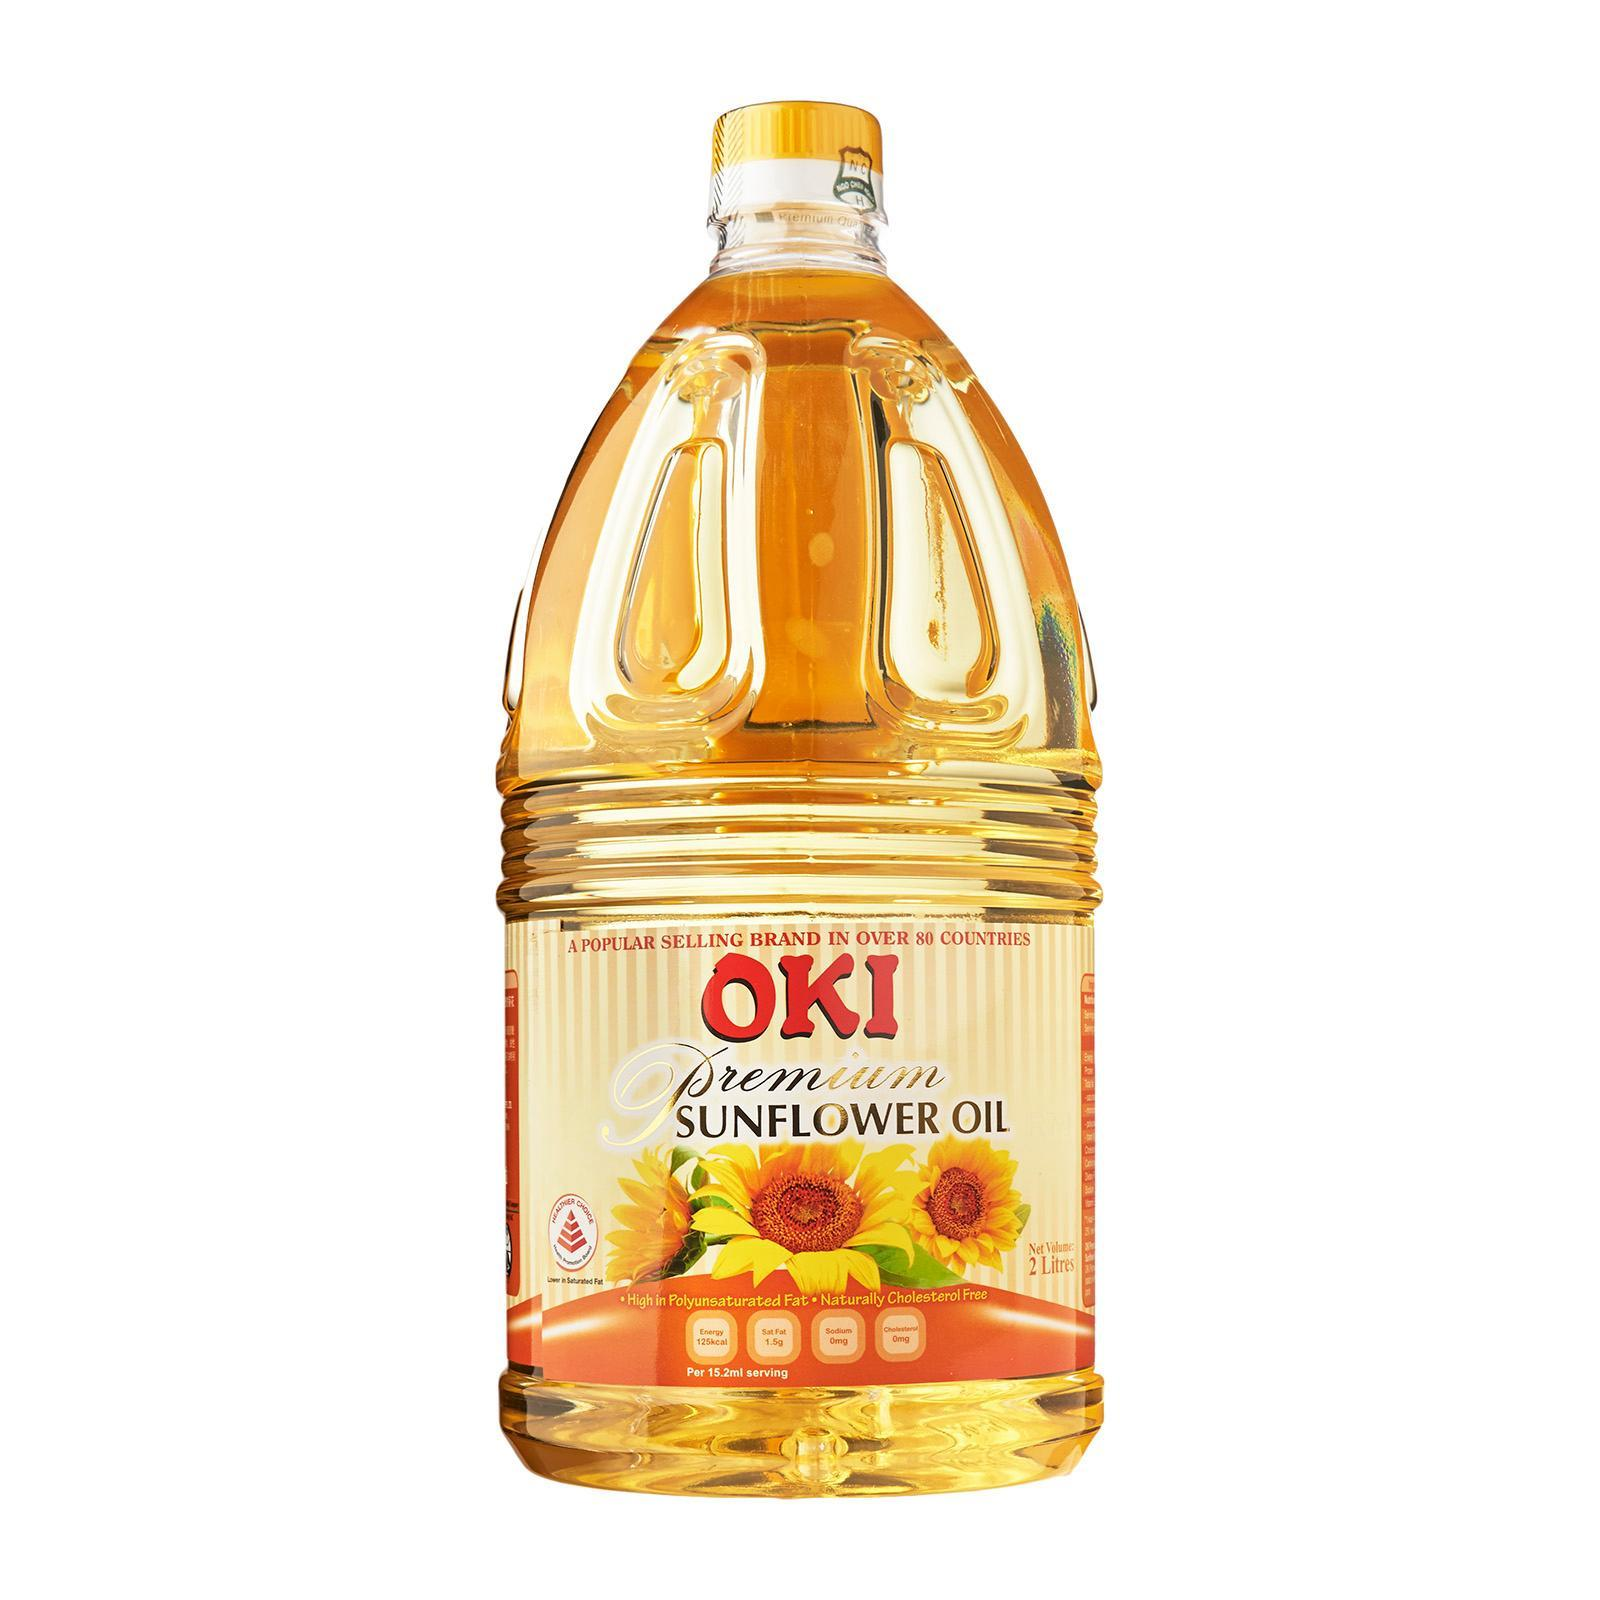 Oki Premium Sunflower Oil 2L